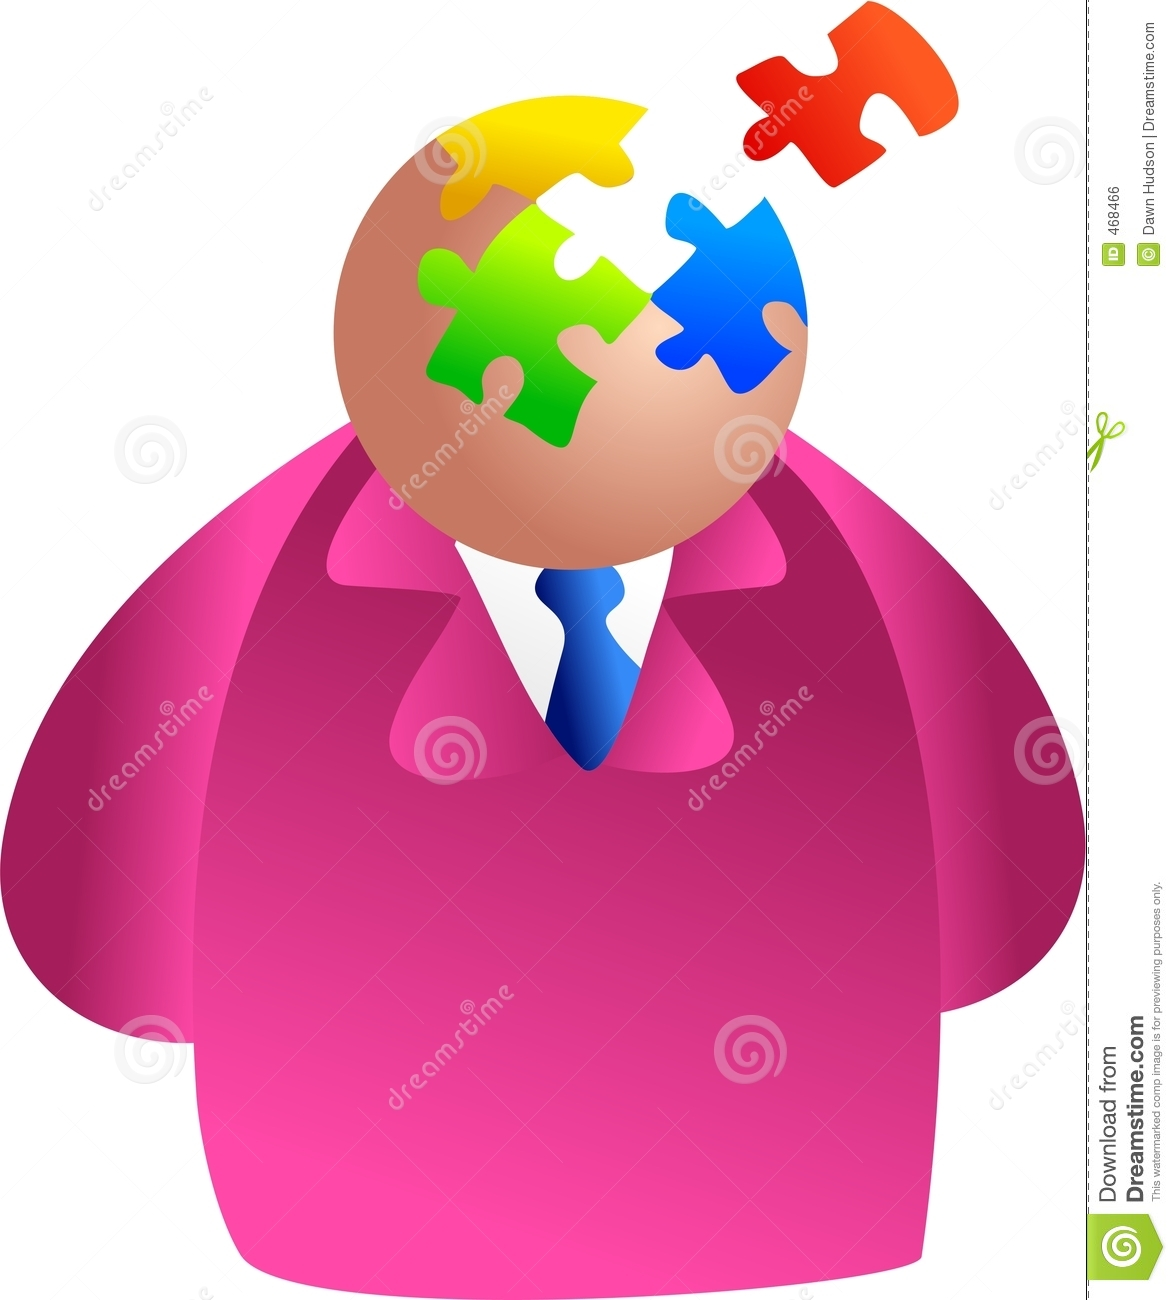 Download Puzzle brain stock illustration. Illustration of suits - 468466